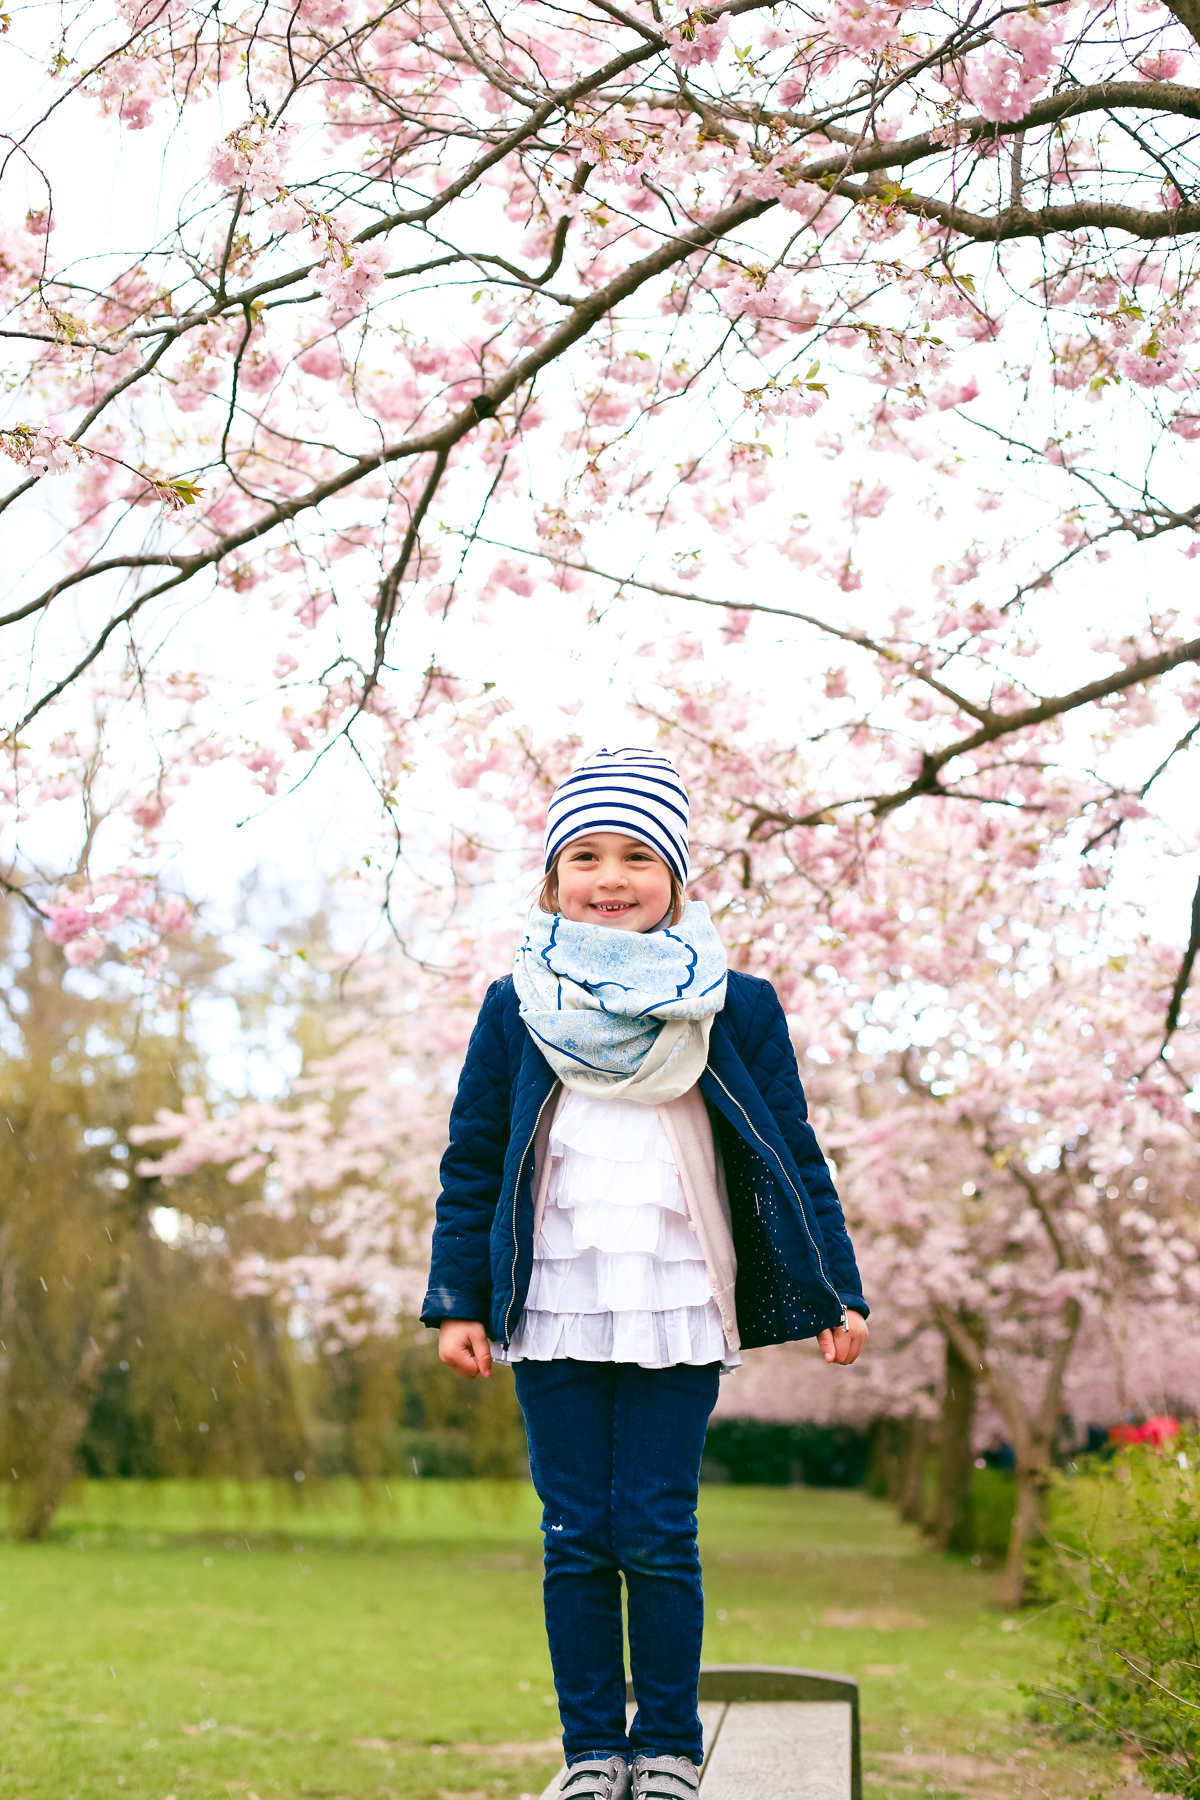 A little break for this forest school tot to check out Copenhagen's best cherry blossoms at the Bispebjerg Cemetery.